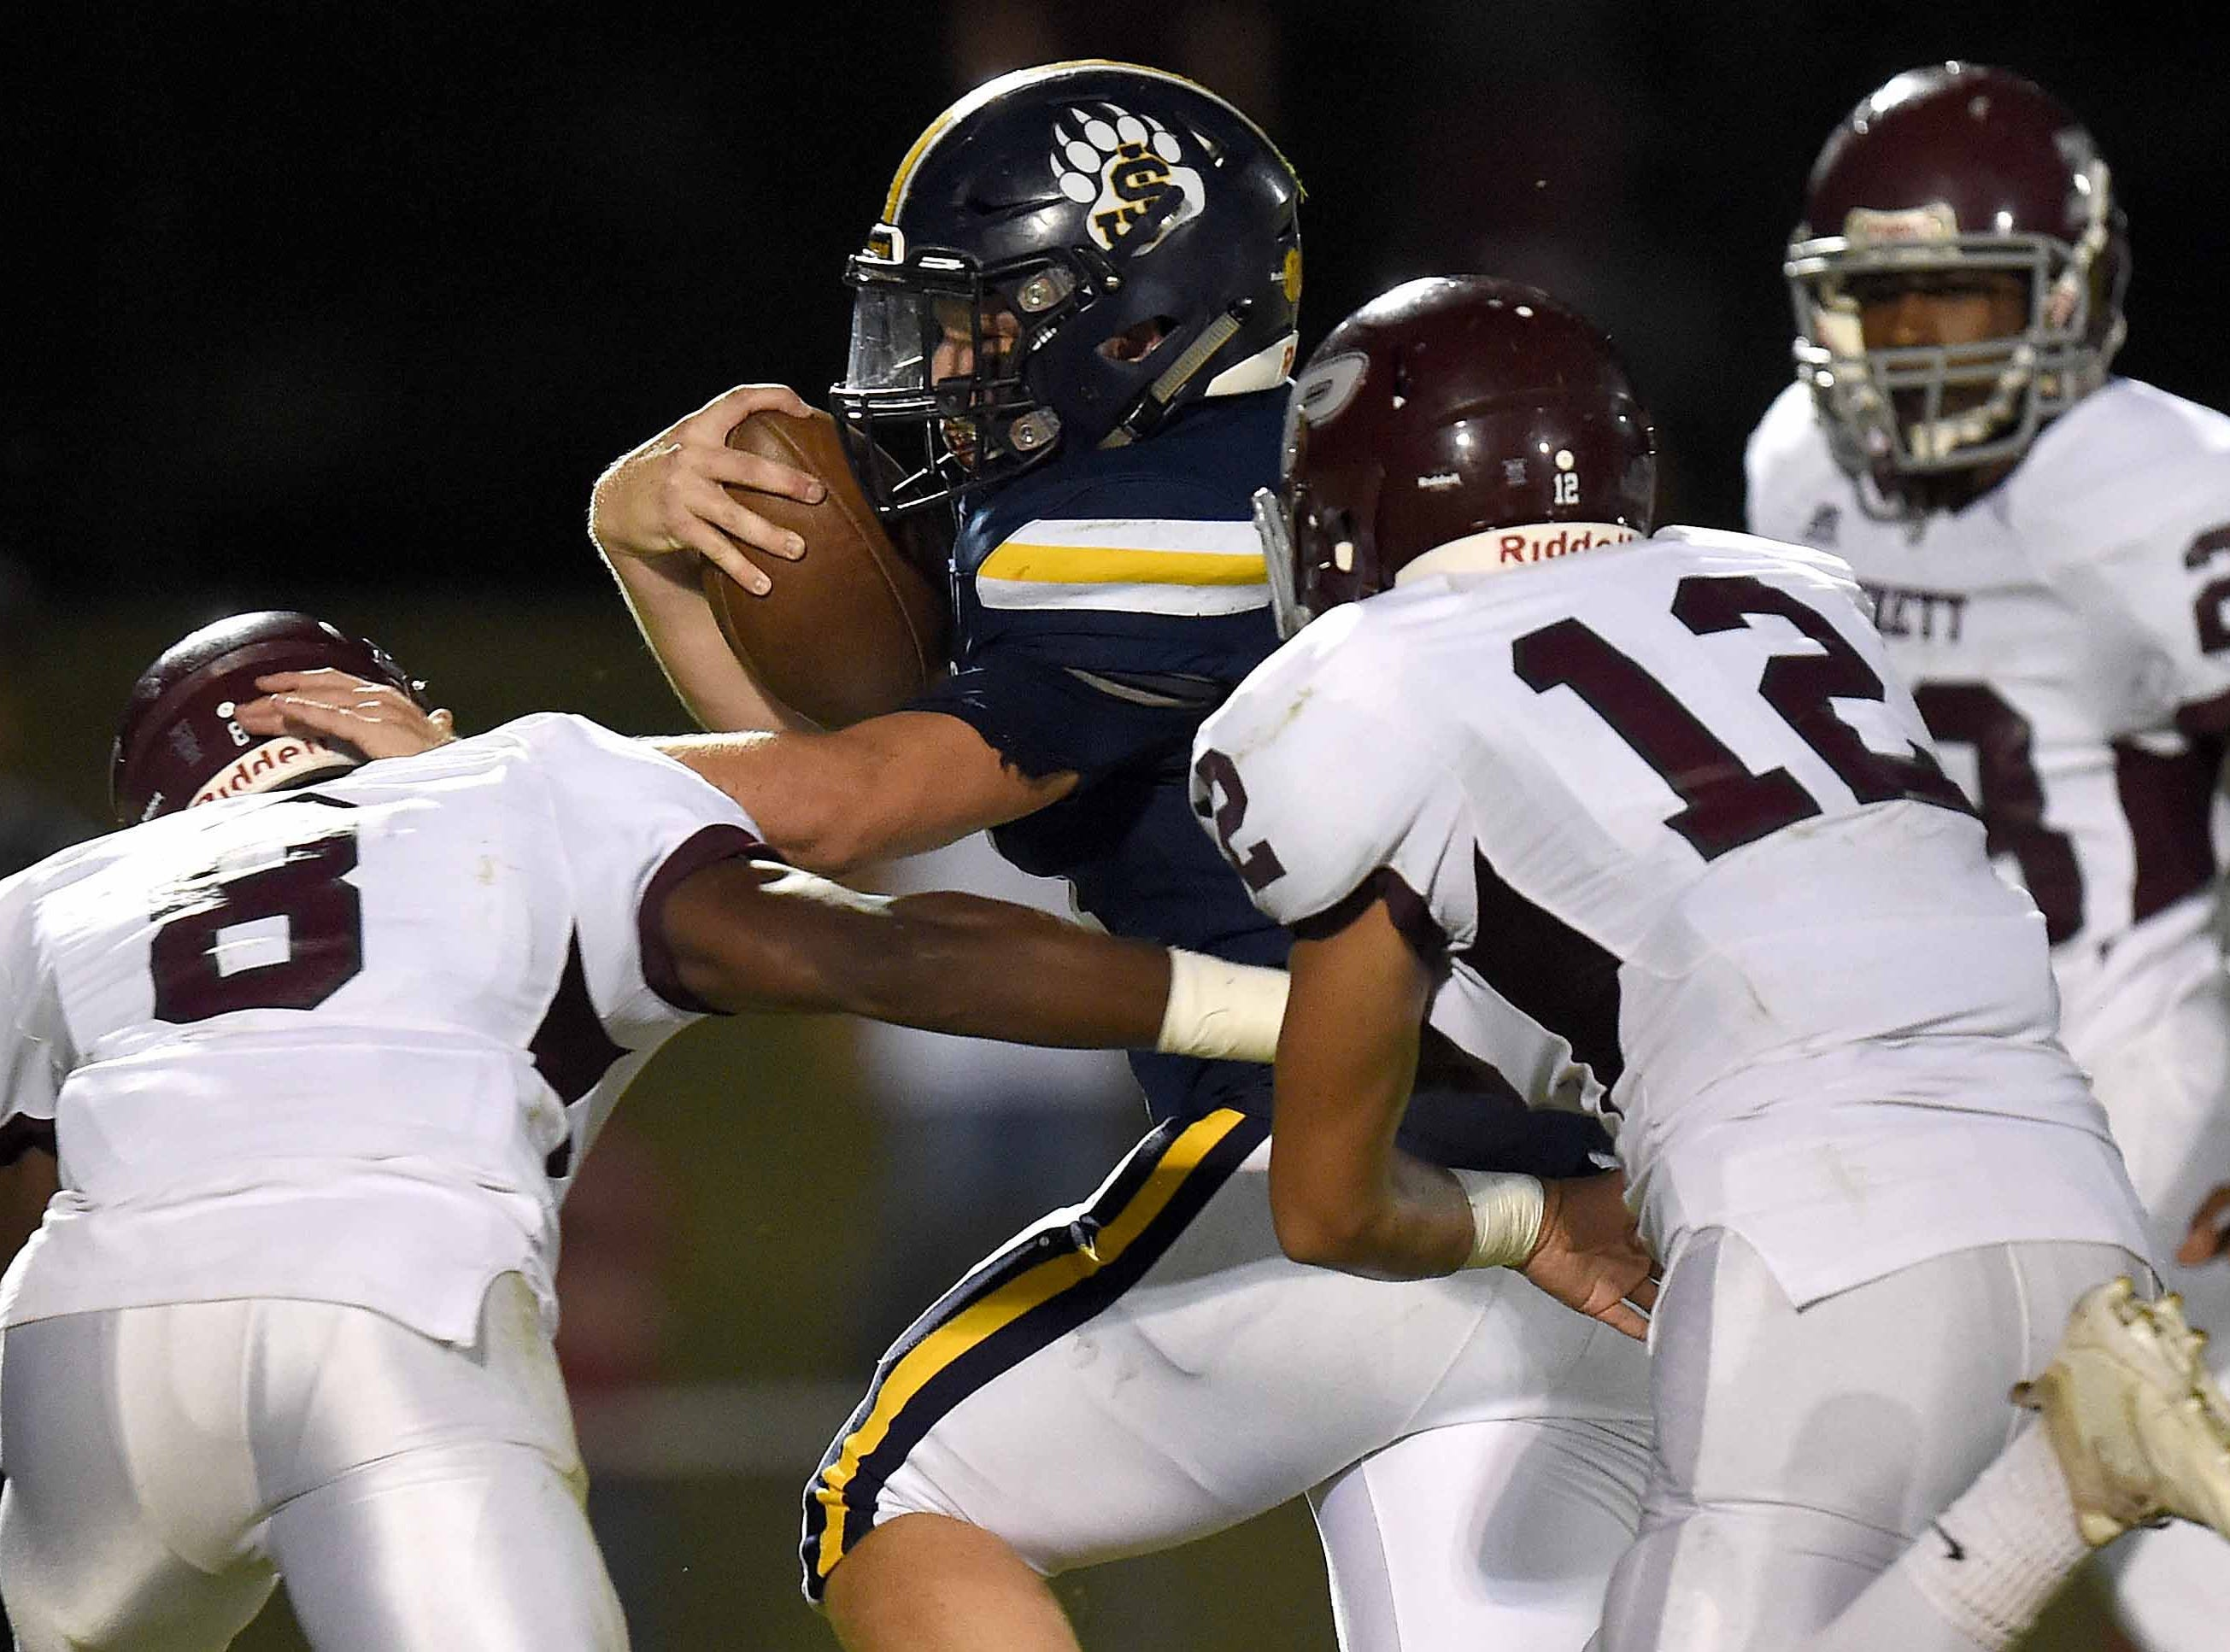 St. Joseph's Chandler Thornhill (24) carries the ball high and tight as he runs through a crowd of Puckett Wolves on Friday, October 19, 2018, at St. Joseph Catholic School in Madison, Miss.